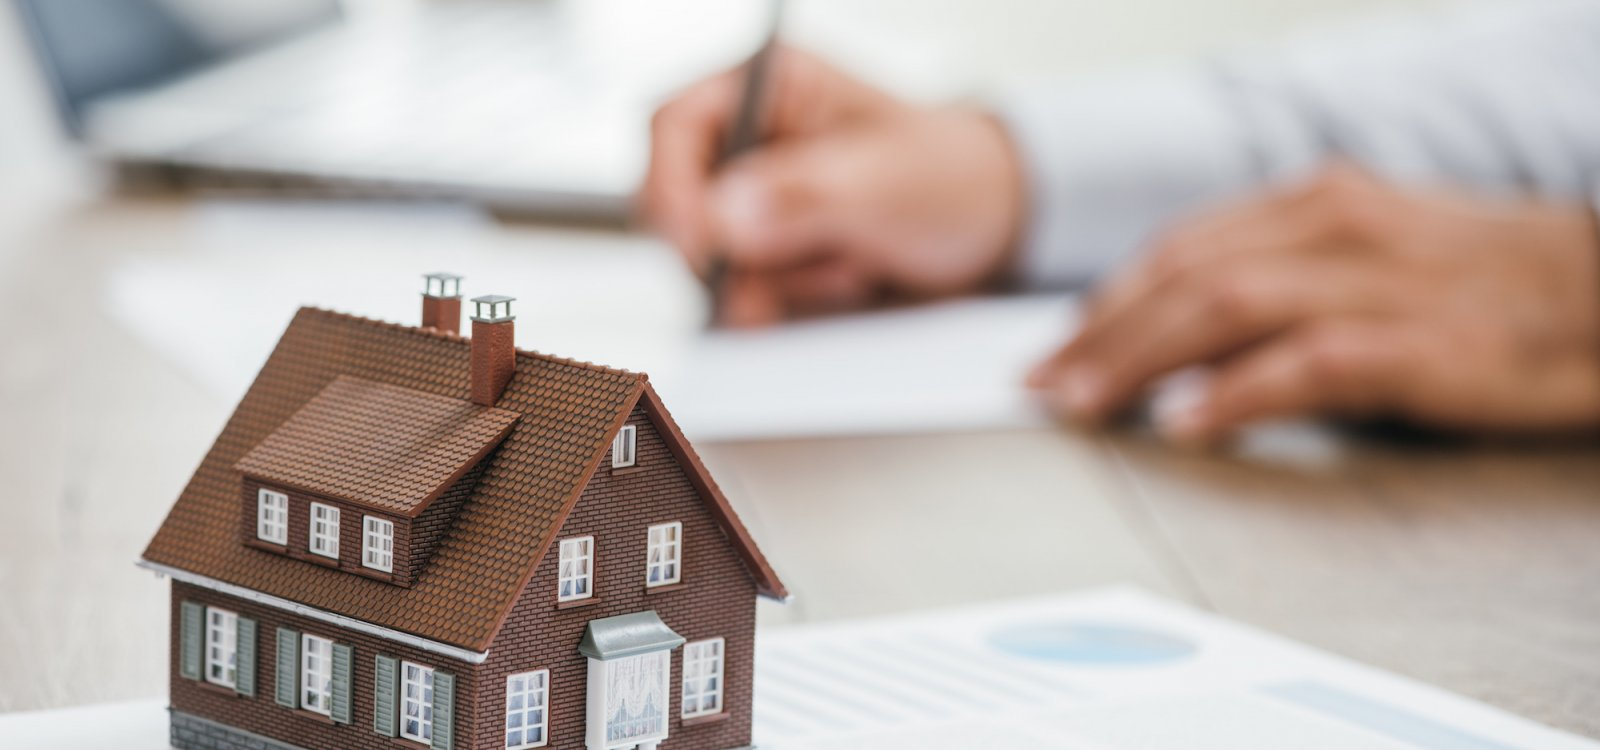 How To Get the Highest Return As A Real-Estate Entrepreneur